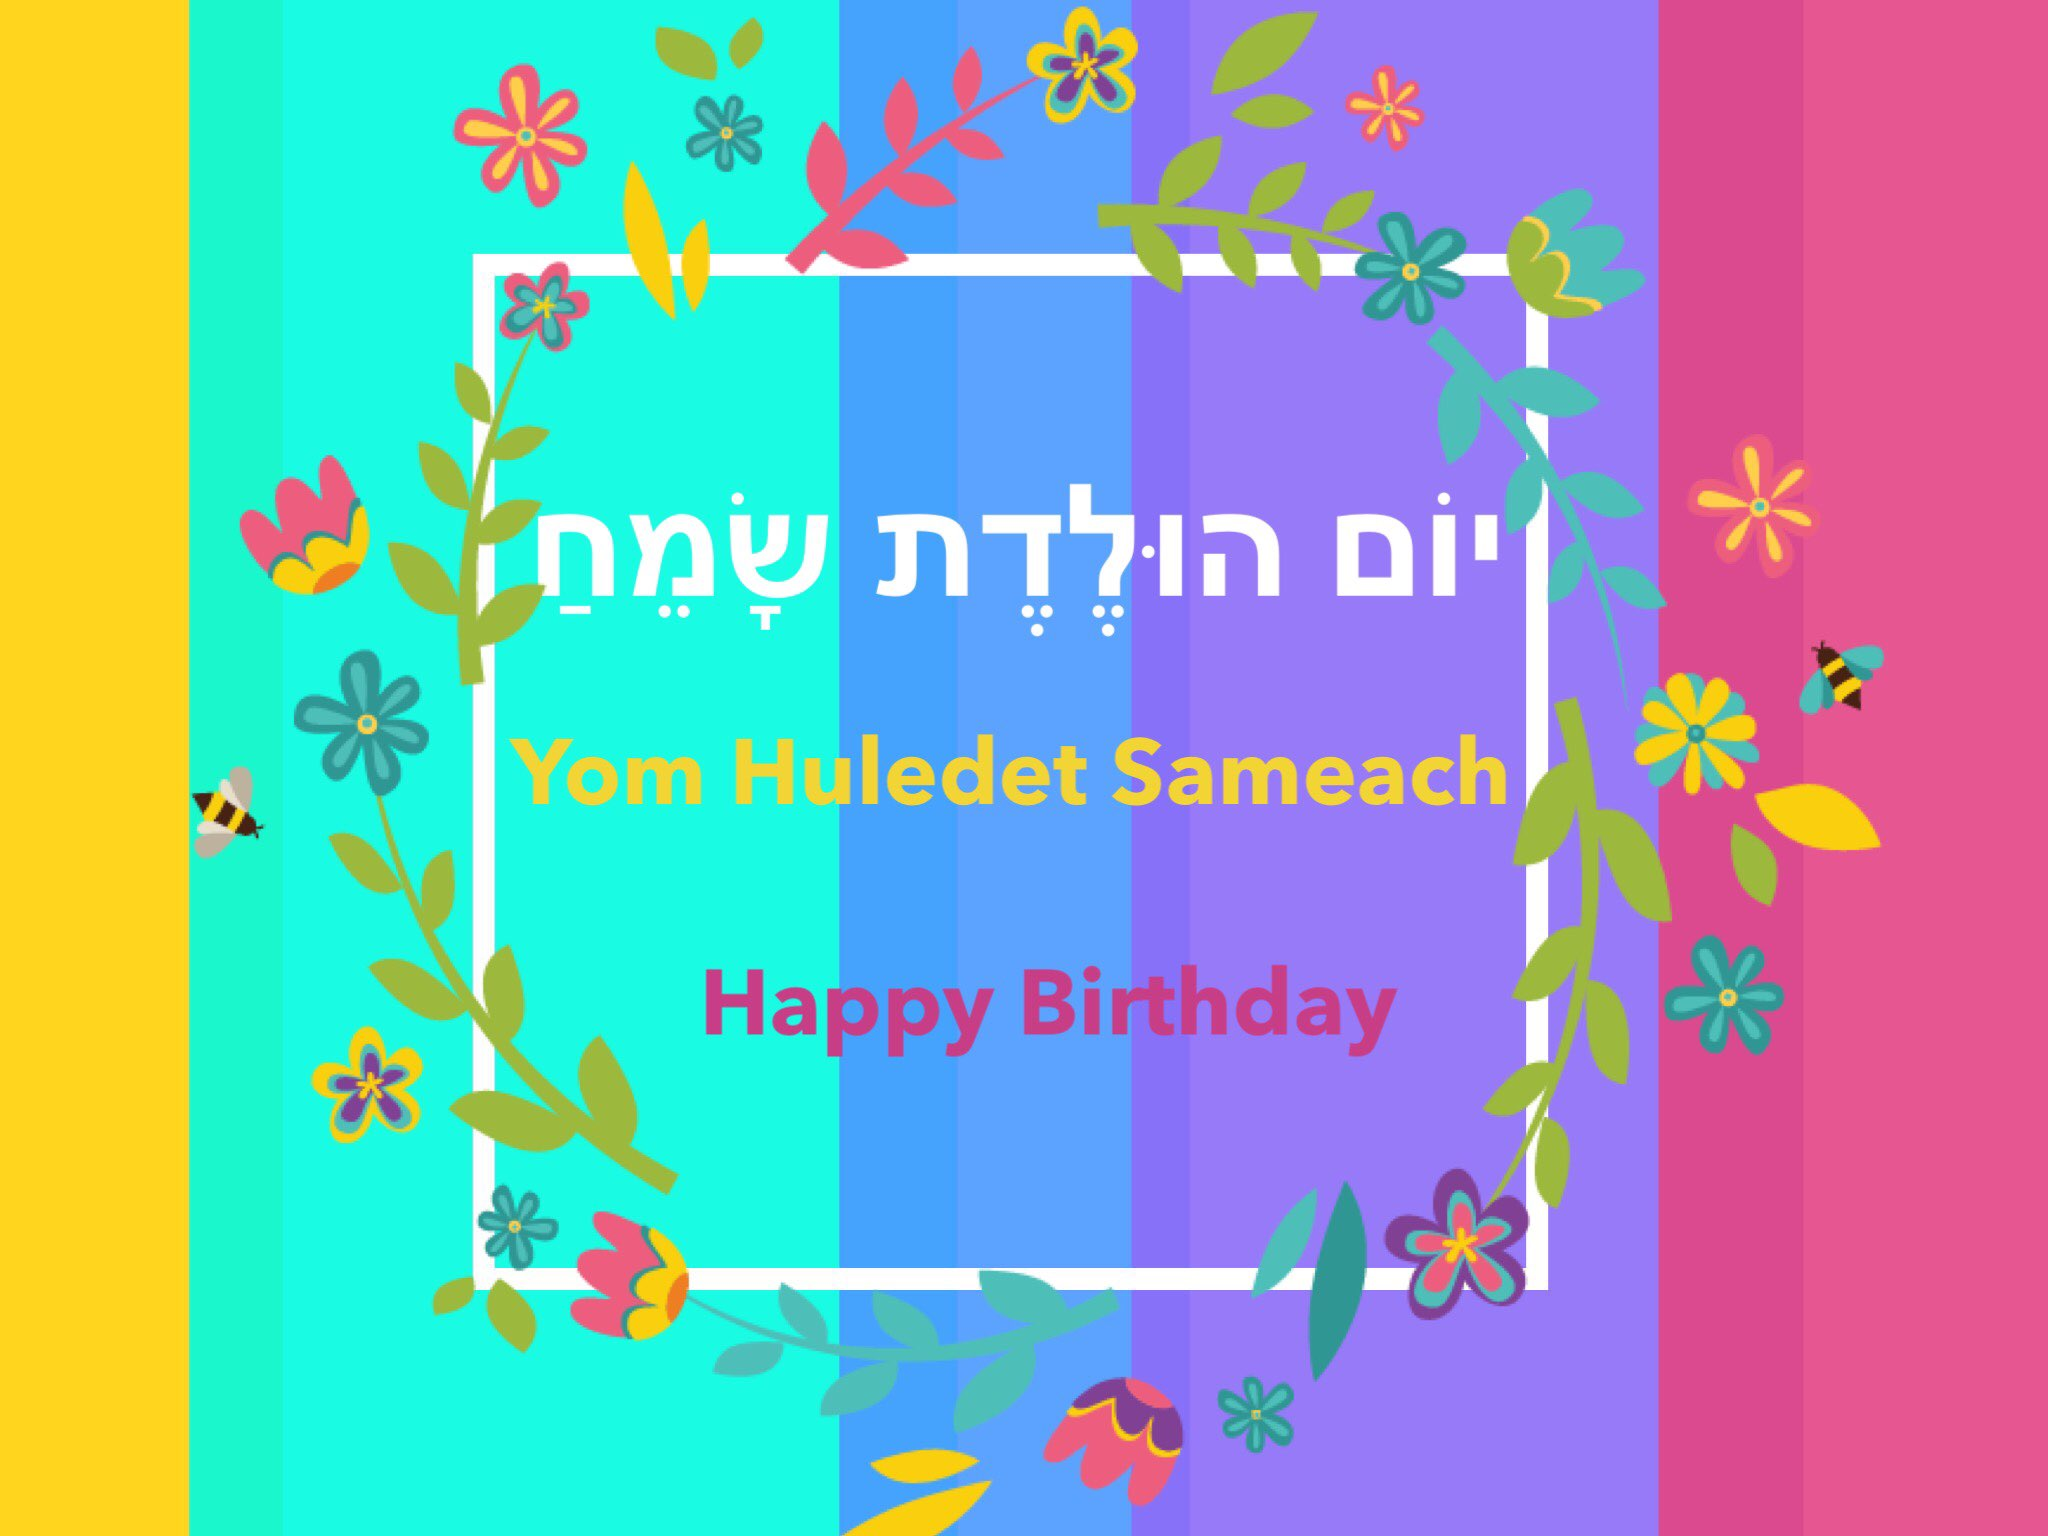 Play unit 3 birthday vocabulary by yr zegze on ji tap unit 1 birthday greetings unit 1 birthday greeting vocabulary some greeting words you will need to know if you go to a party in israel kristyandbryce Image collections